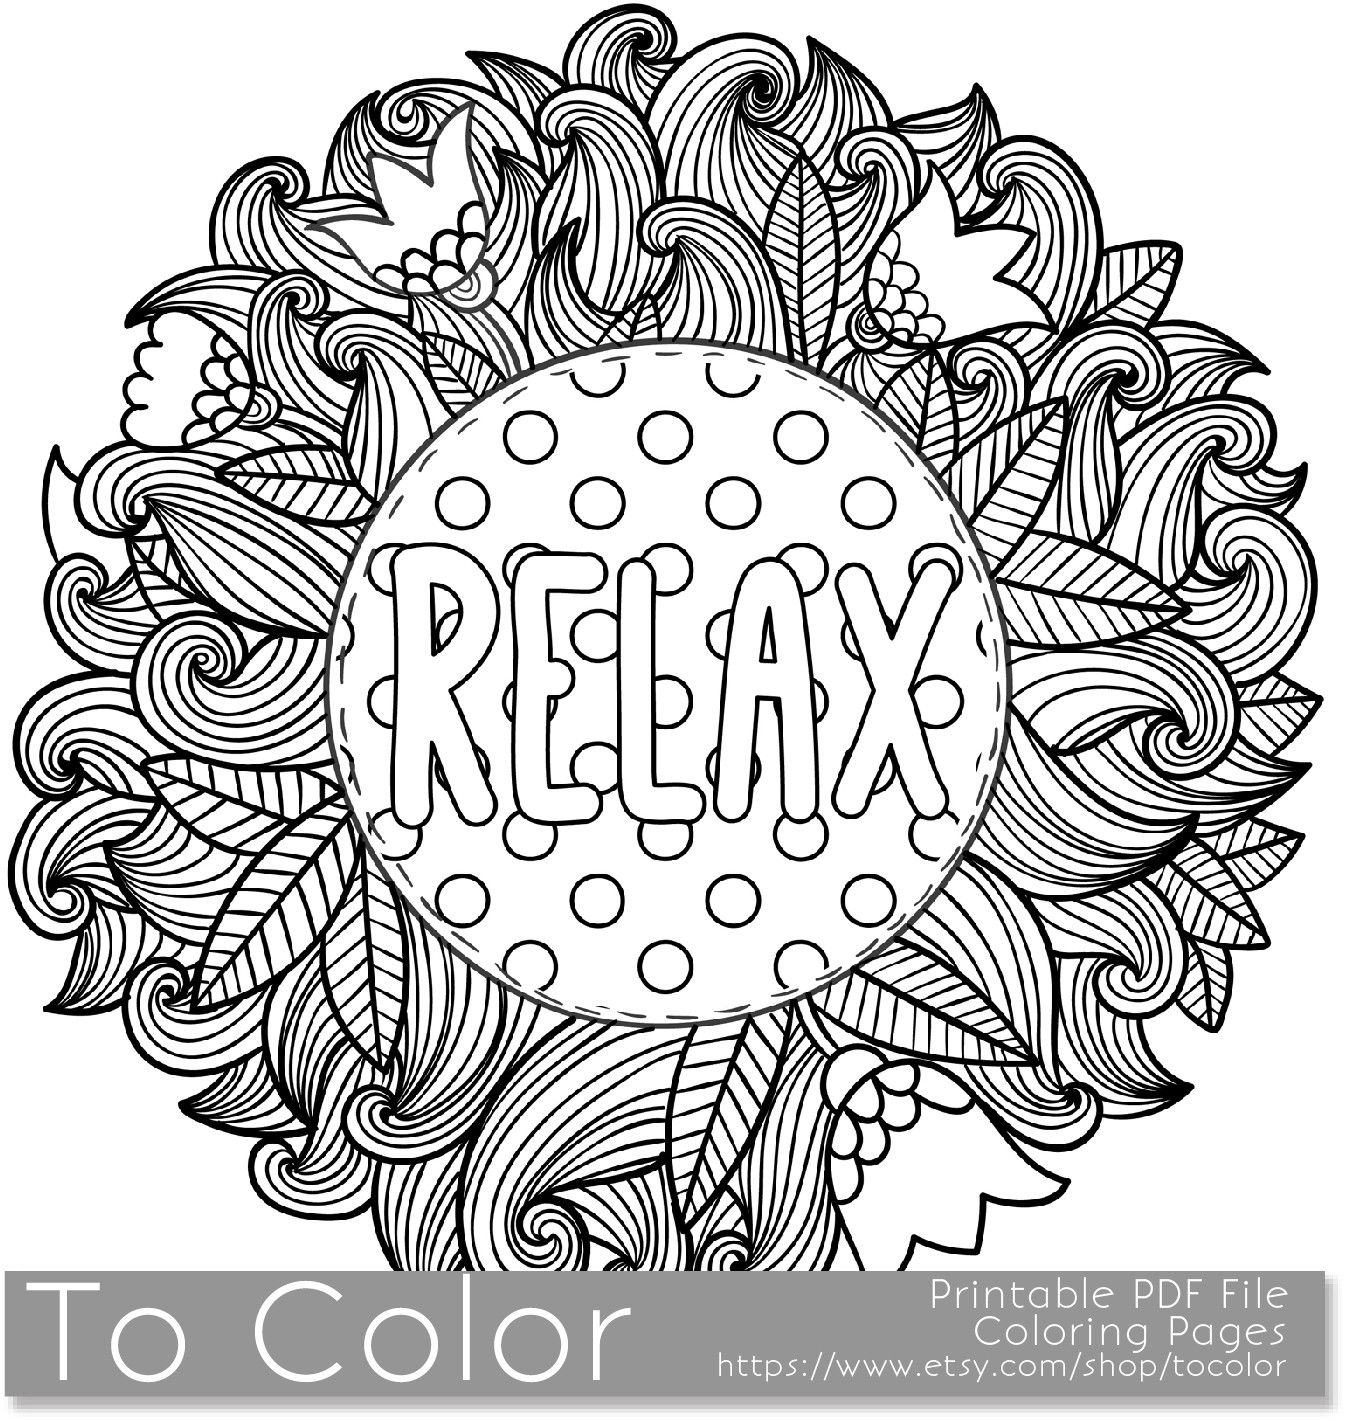 Free coloring pages for adults quotes -  Relax Coloring Page For Grown Ups This Is A Printable Pdf Coloring Page